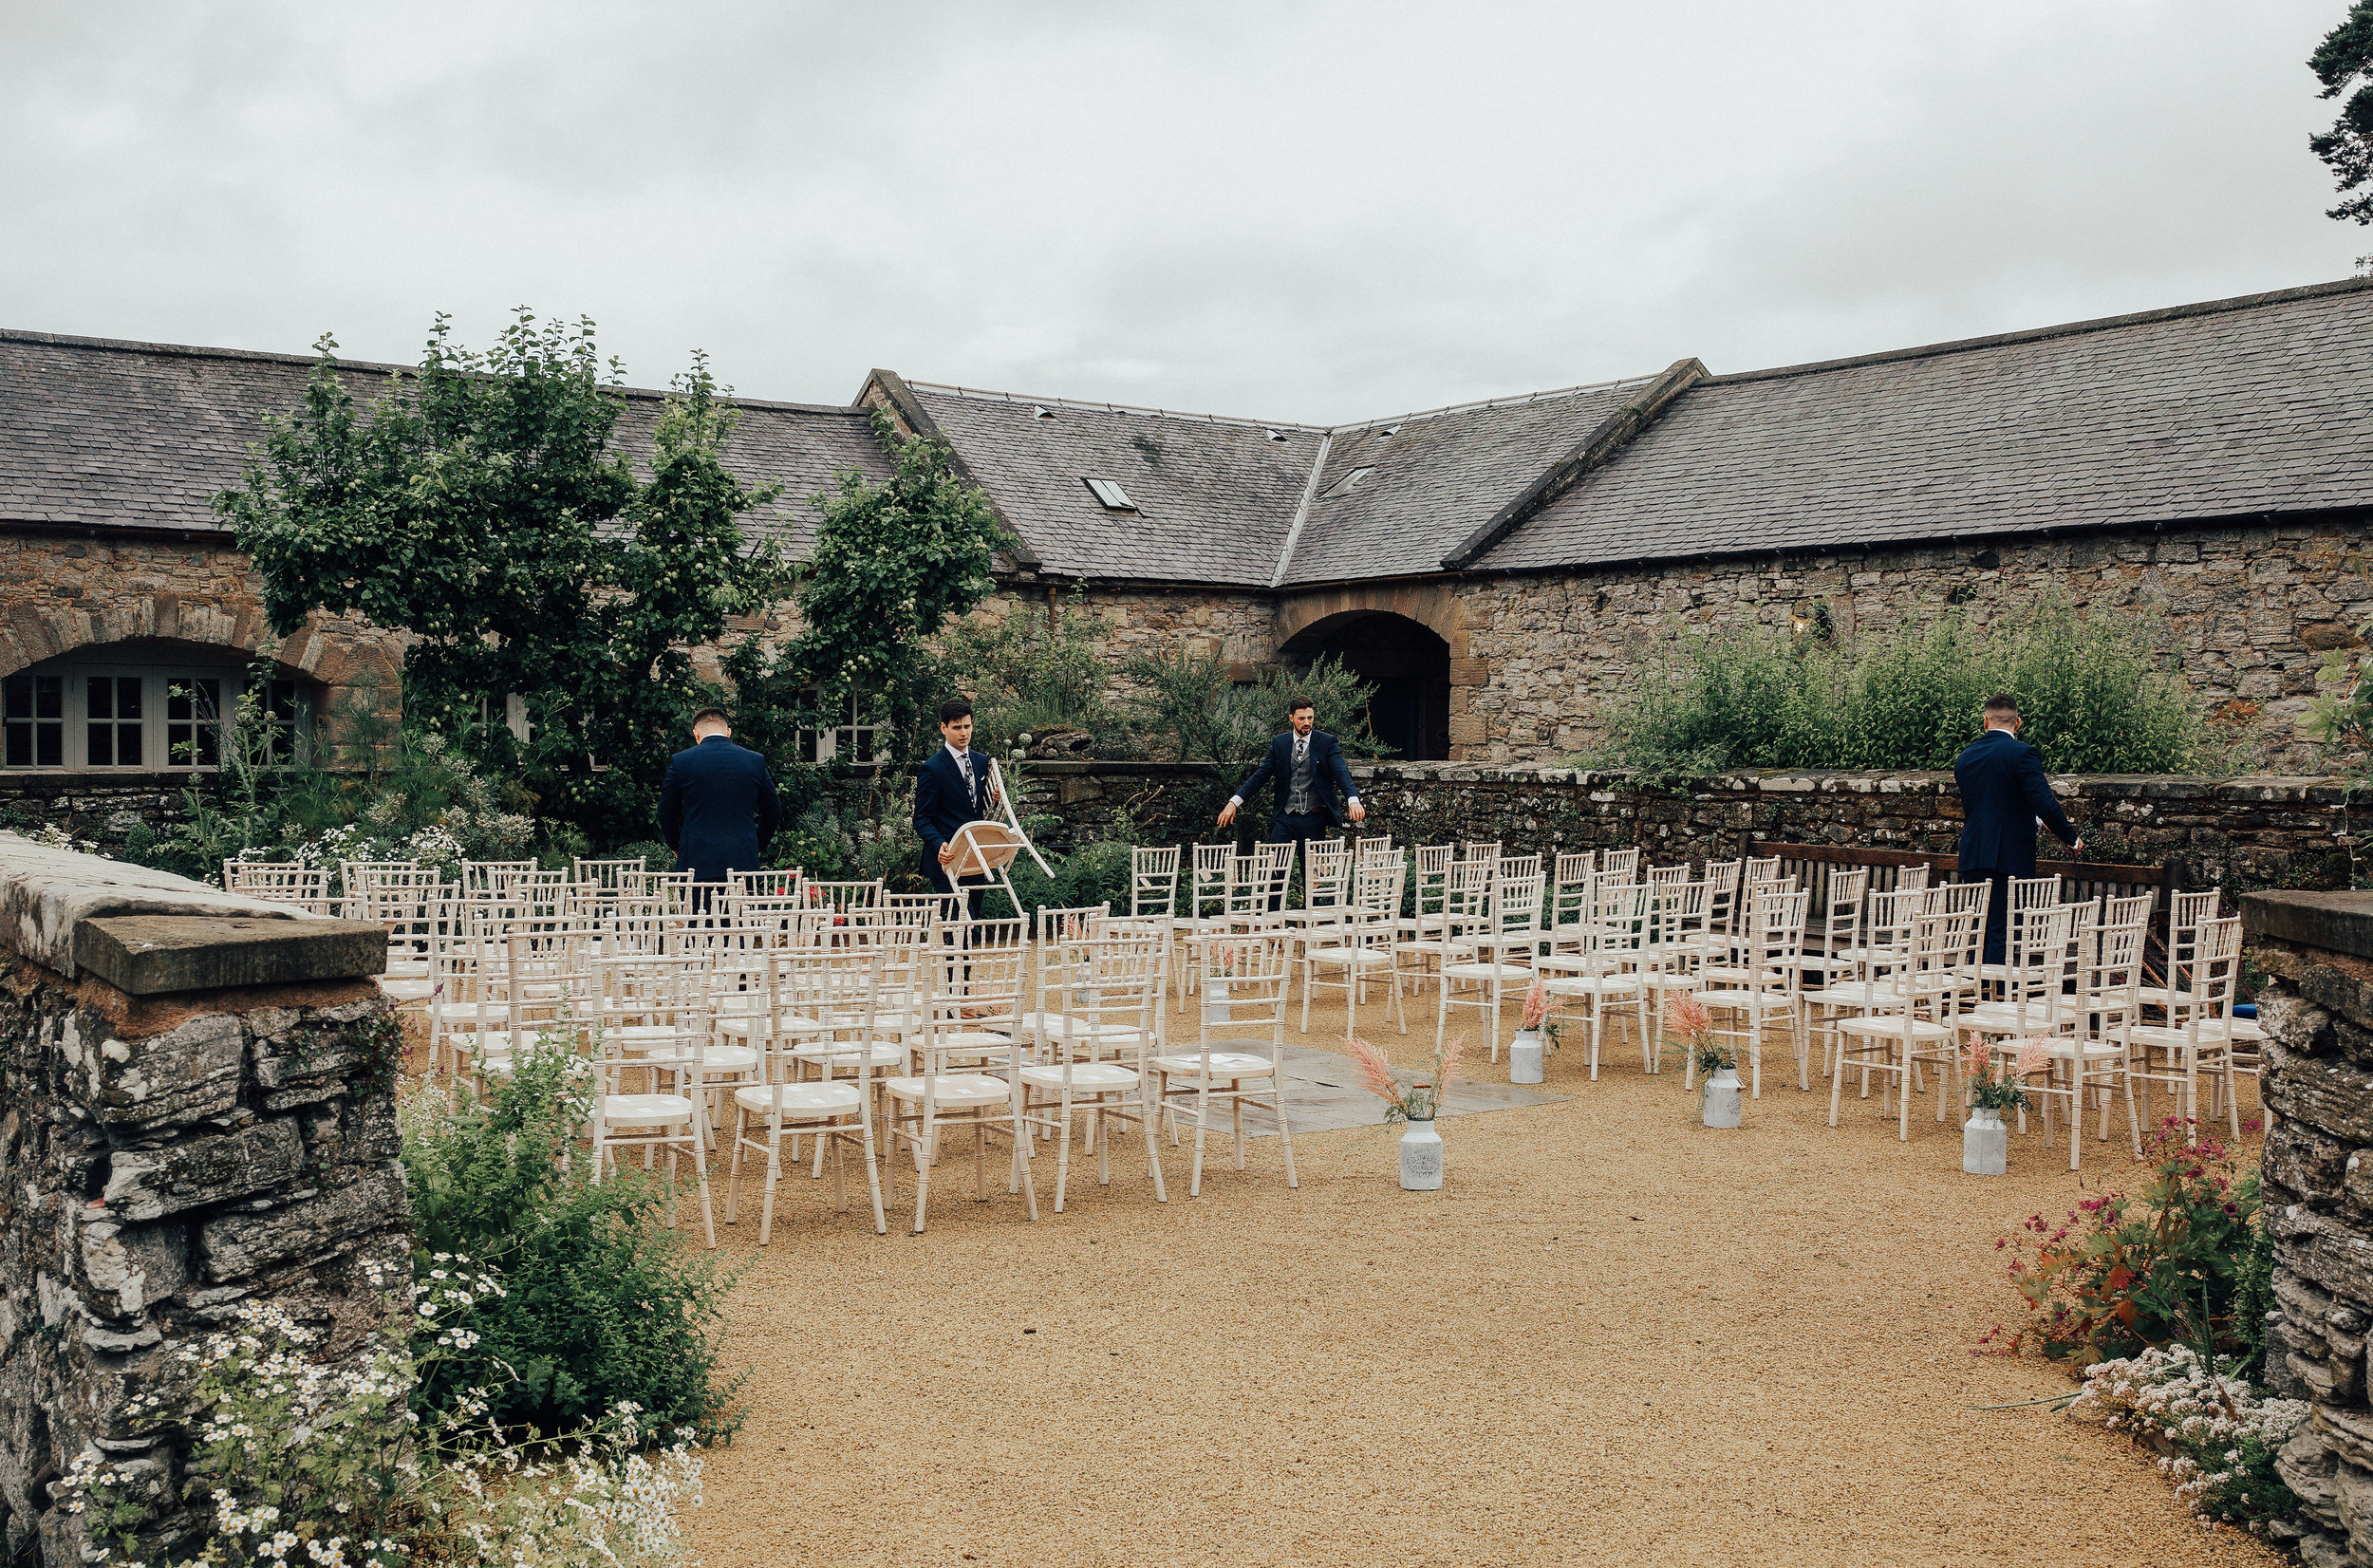 PJ_PHILLIPS_PHOTOGRAPHY_EDINBURGH_WEDDERBURN_BARNS_WEDDING_EDINBURGH_WEDDING_PHOTOGRAPHER_32.jpg